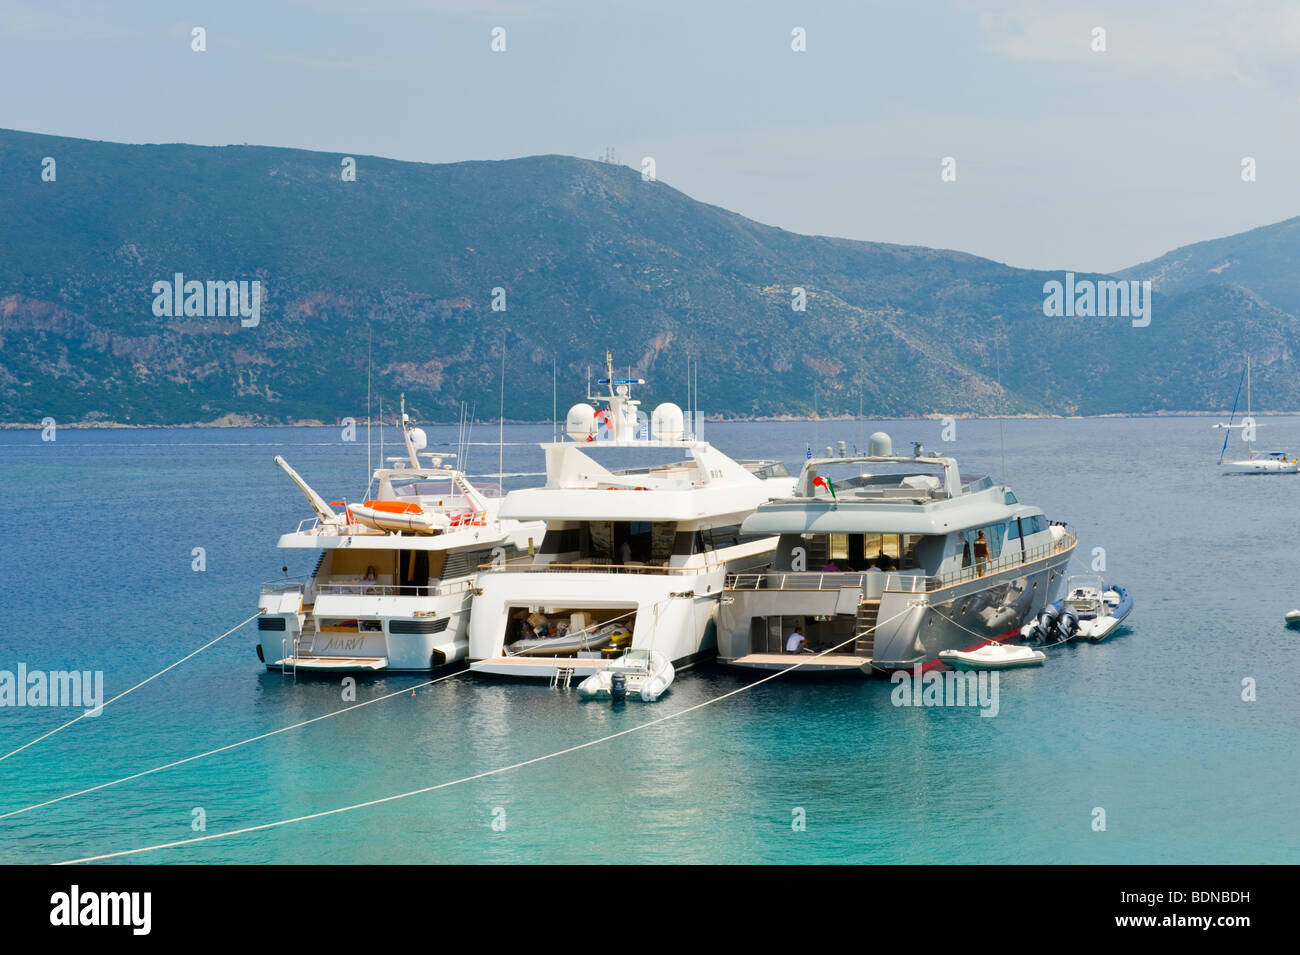 Luxury yachts moored in picturesque harbour at Fiskardo on the Greek Mediterranean island of Kefalonia Greece GR - Stock Image